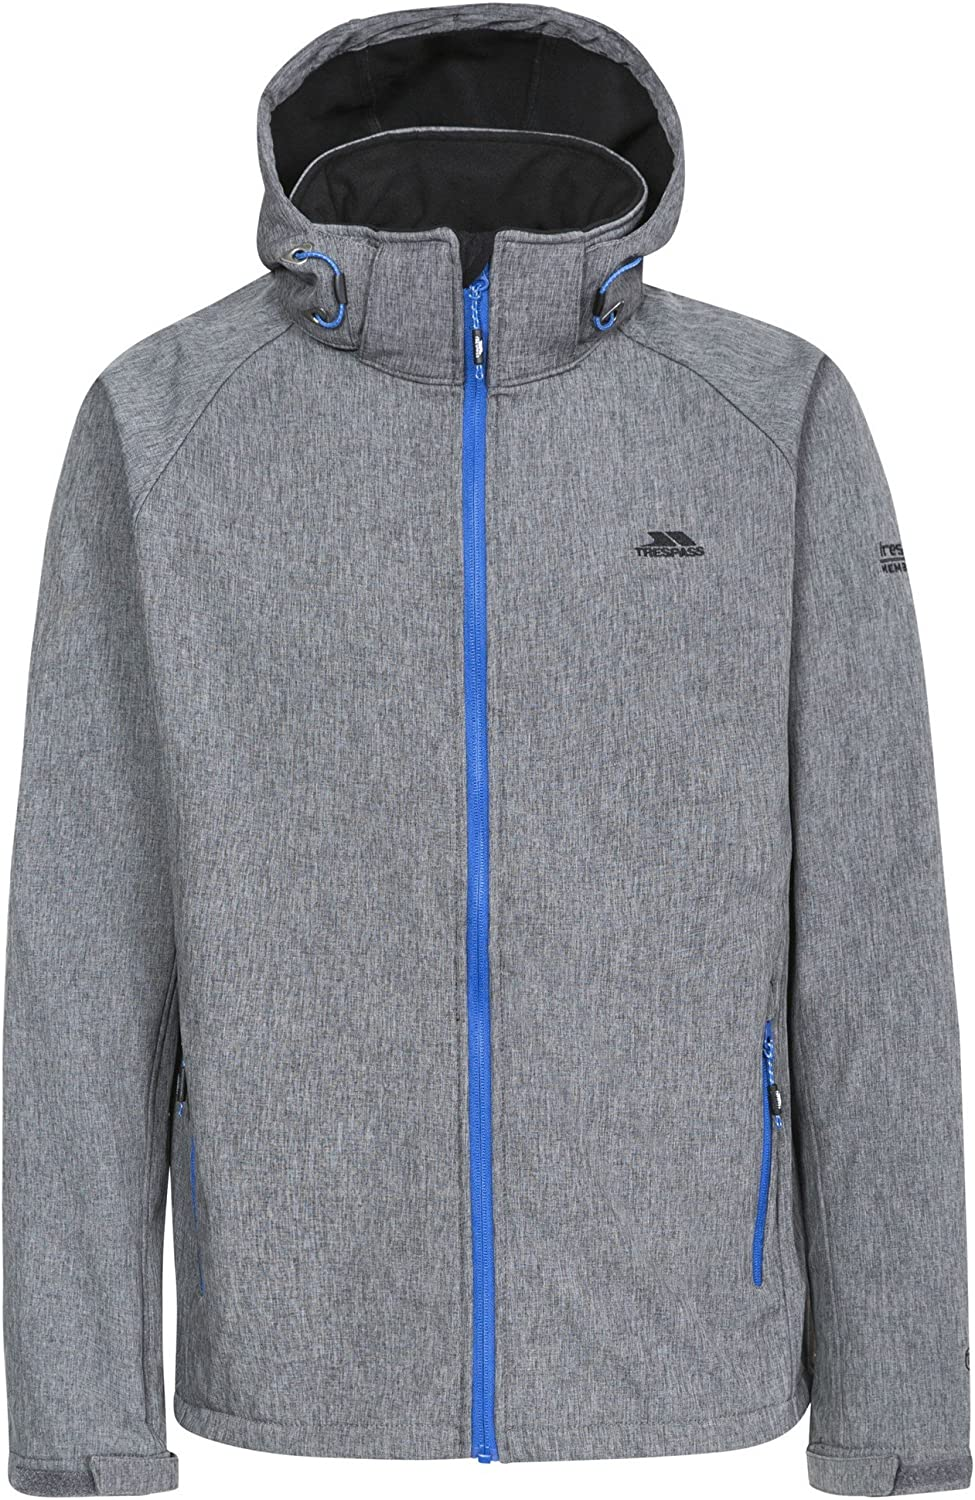 Trespass Mens Rafi excellence Waterproof Jacket Sale Special Price Softshell